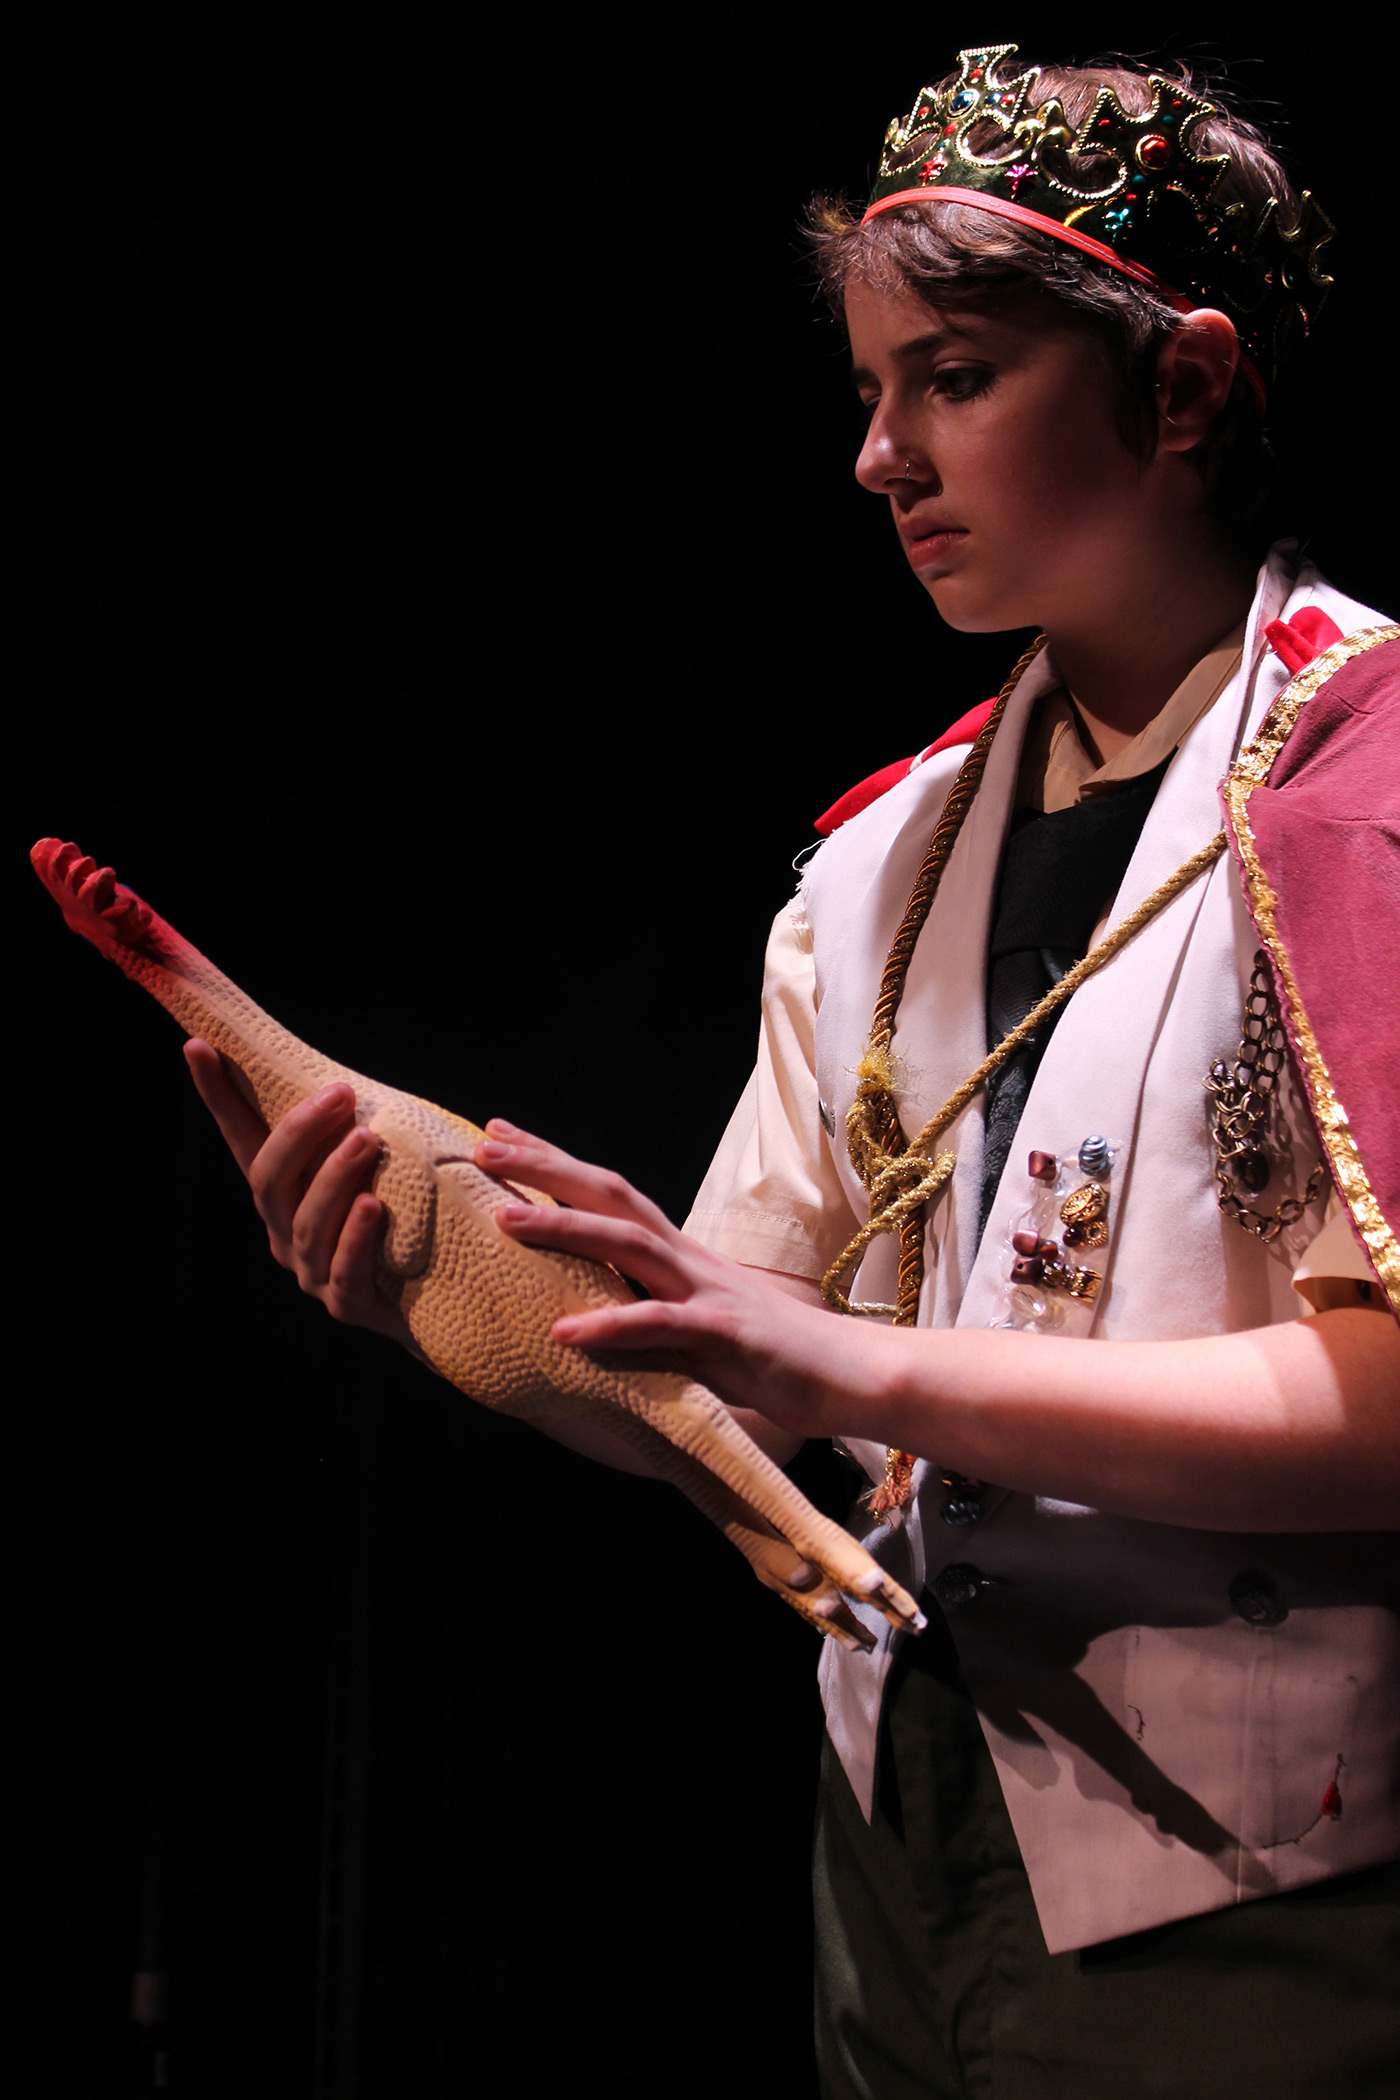 A female student wearing a crown and holding a rubber chicken on stage during a UMass Lowell Theatre Arts production.